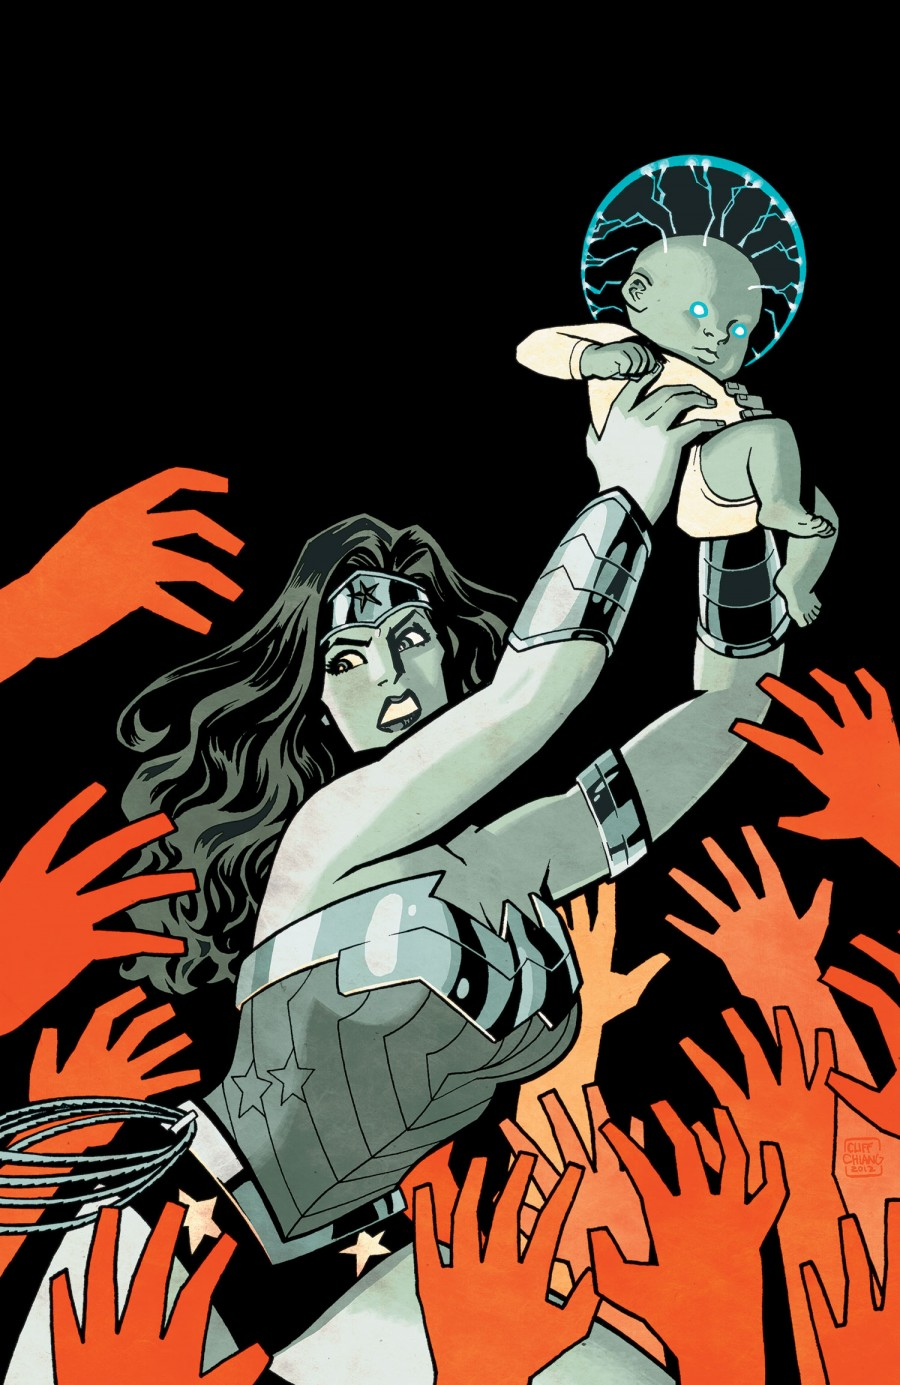 V. reviews Wonder Woman #20 and Fatale#14